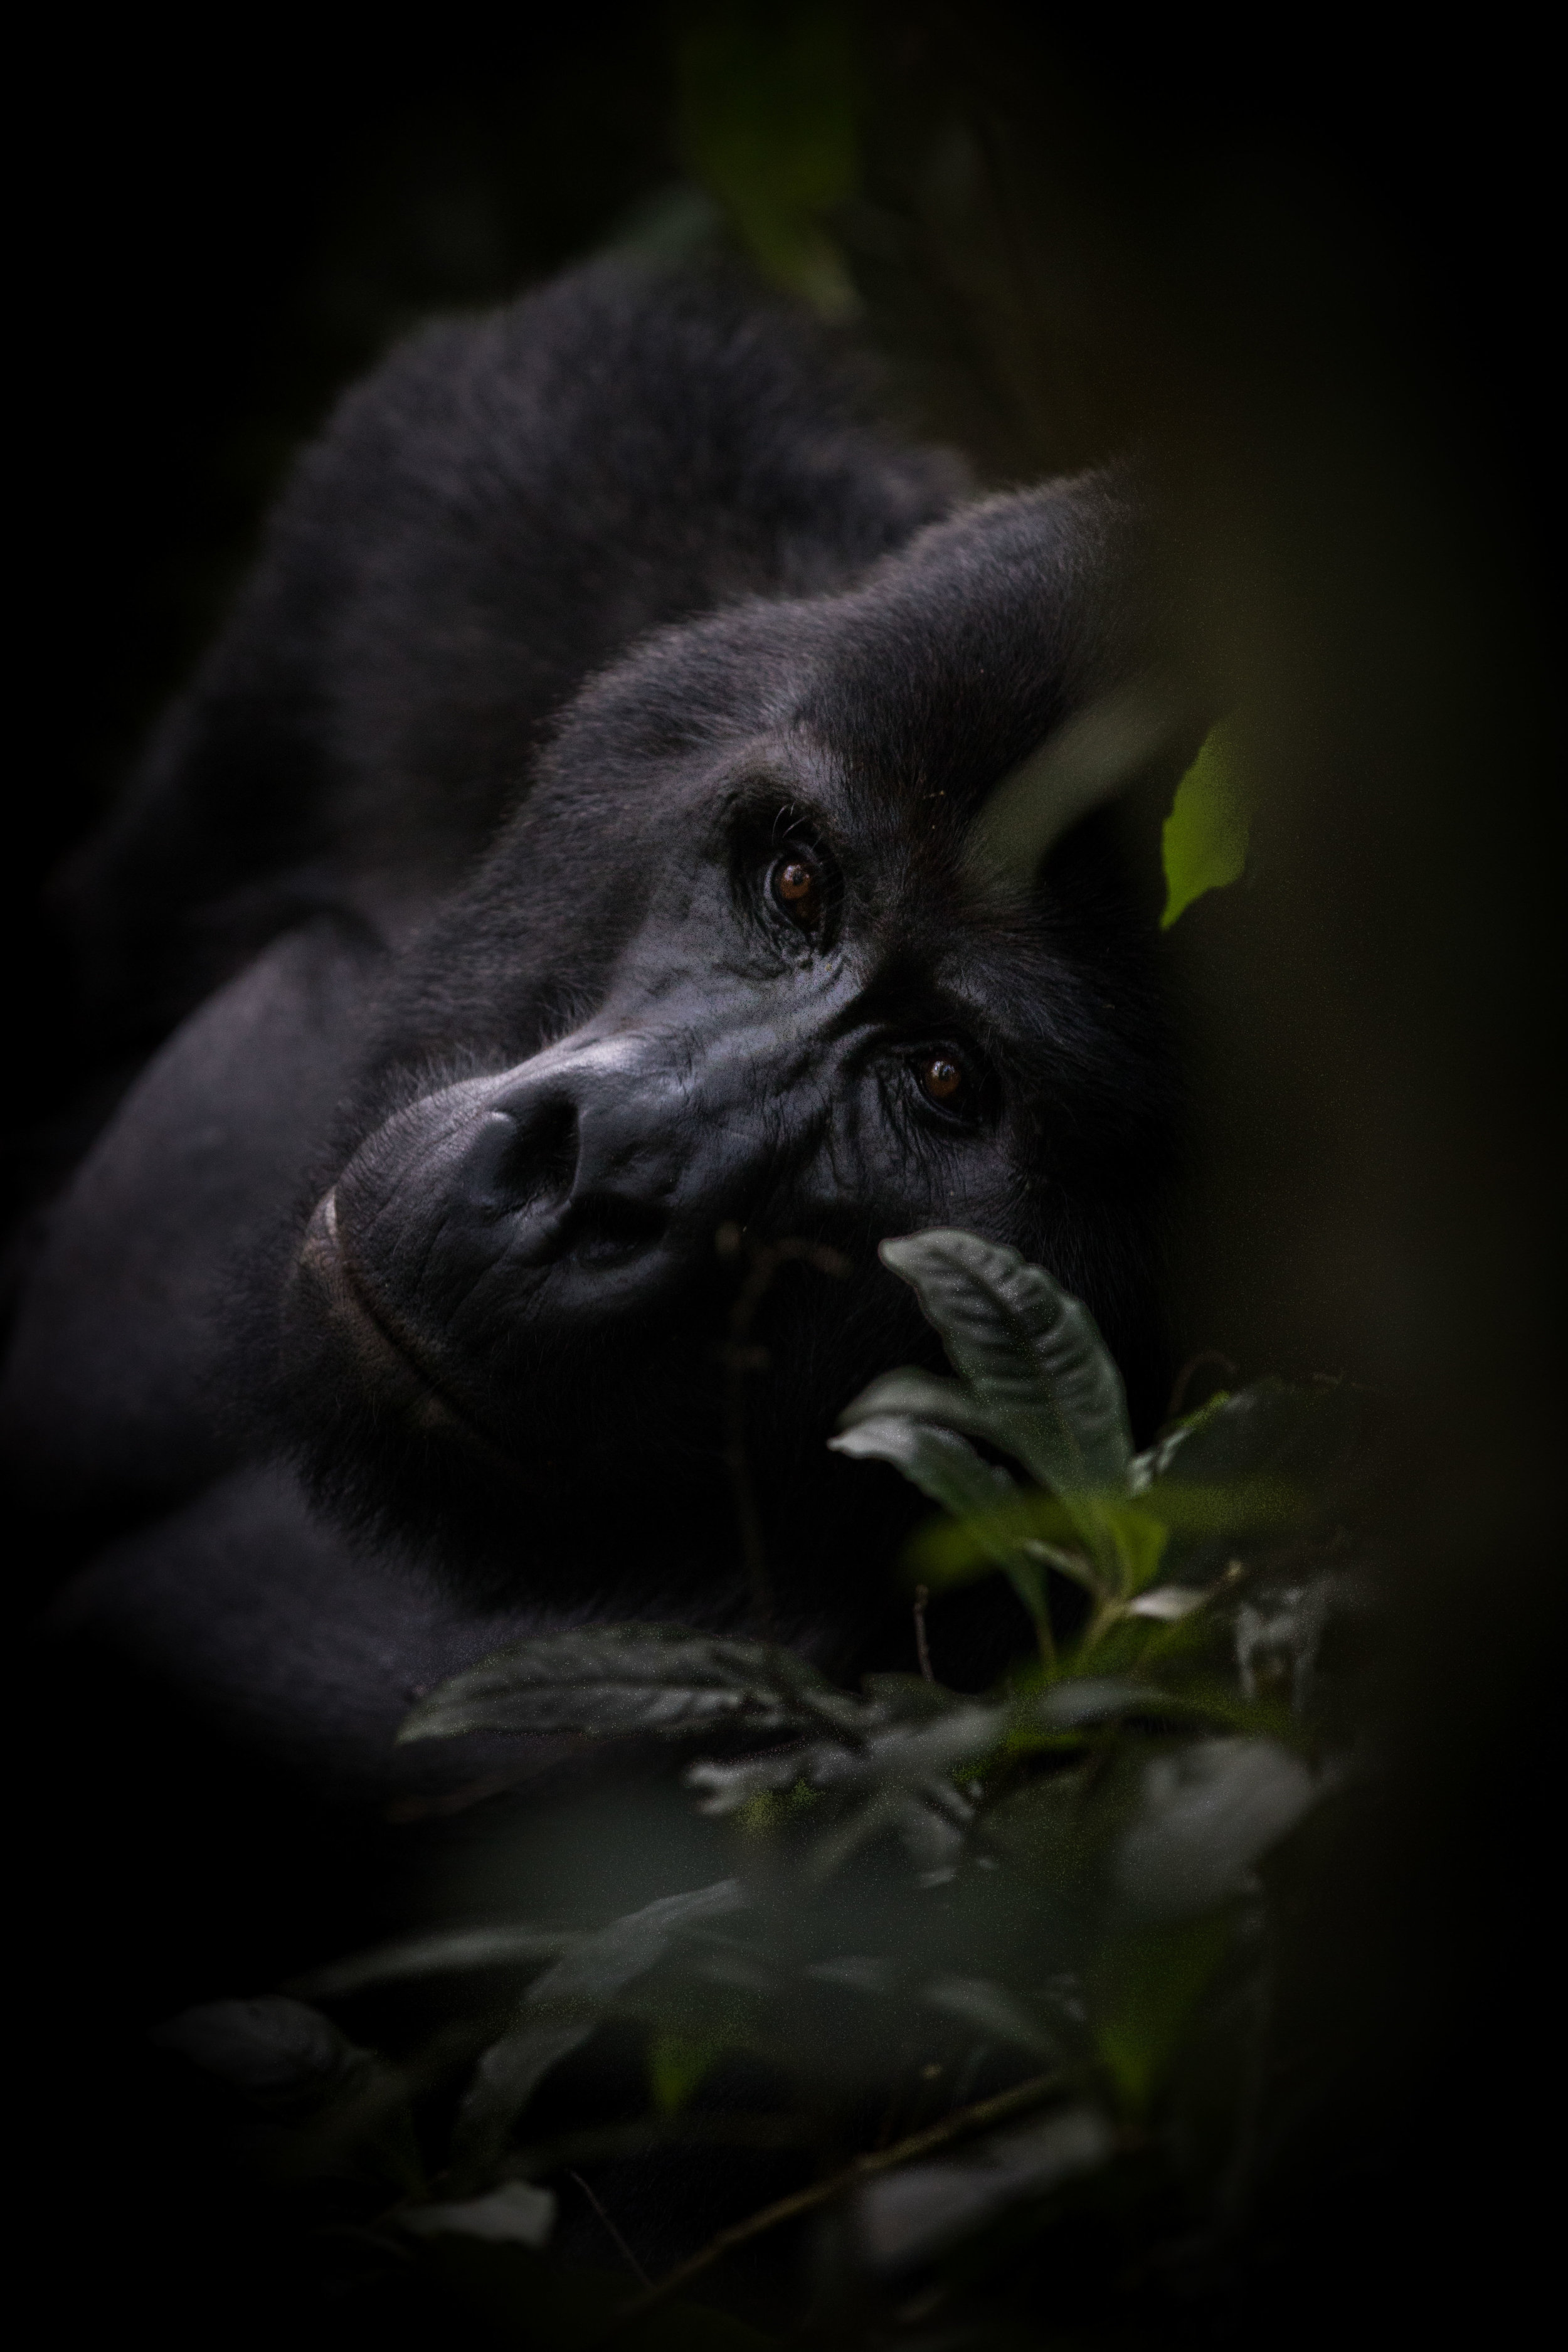 Male silverback waking from a nap against a tree in Bwindi National Park, Uganda. The Bwindi National Park is one of the last remaining habitats in the world for the endangered Mountain Gorilla. The Mountain Gorilla is a highly endangered species and only about 600 are still alive today.